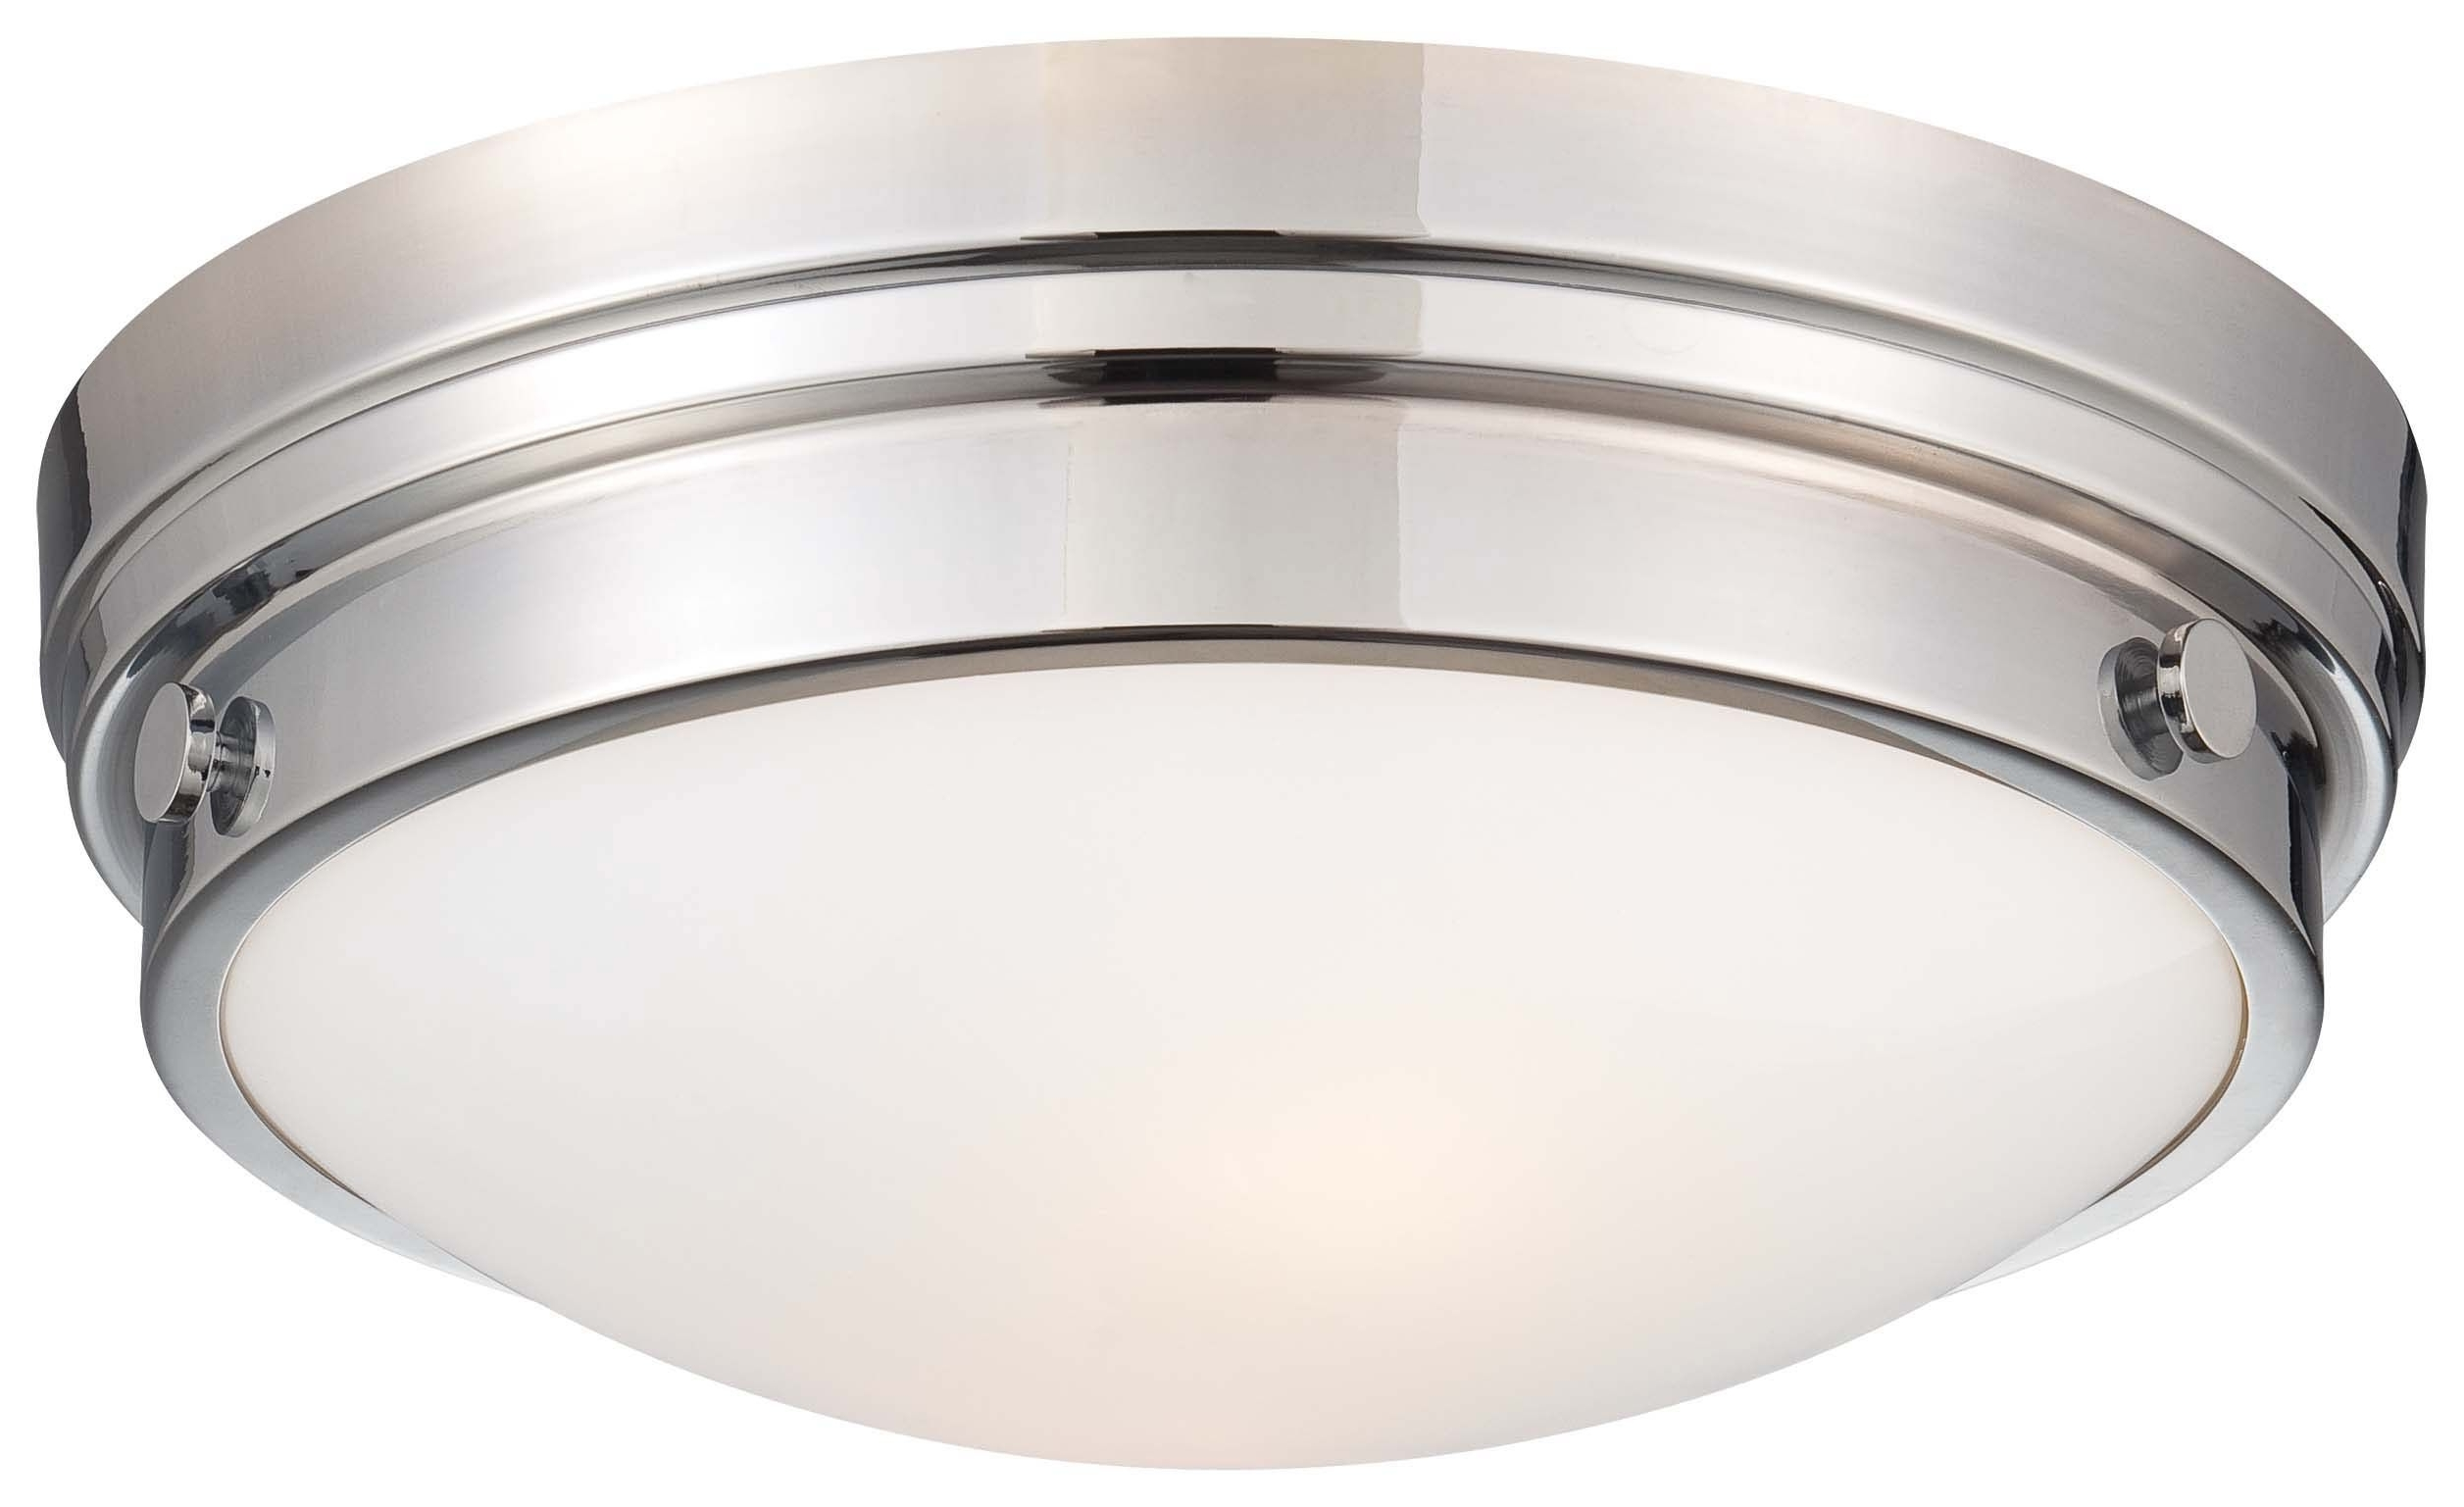 Commercial Outdoor Ceiling Lights Inside Most Up To Date Light : Best Kitchen Light Fixtures Dining Room Lighting For (View 8 of 20)